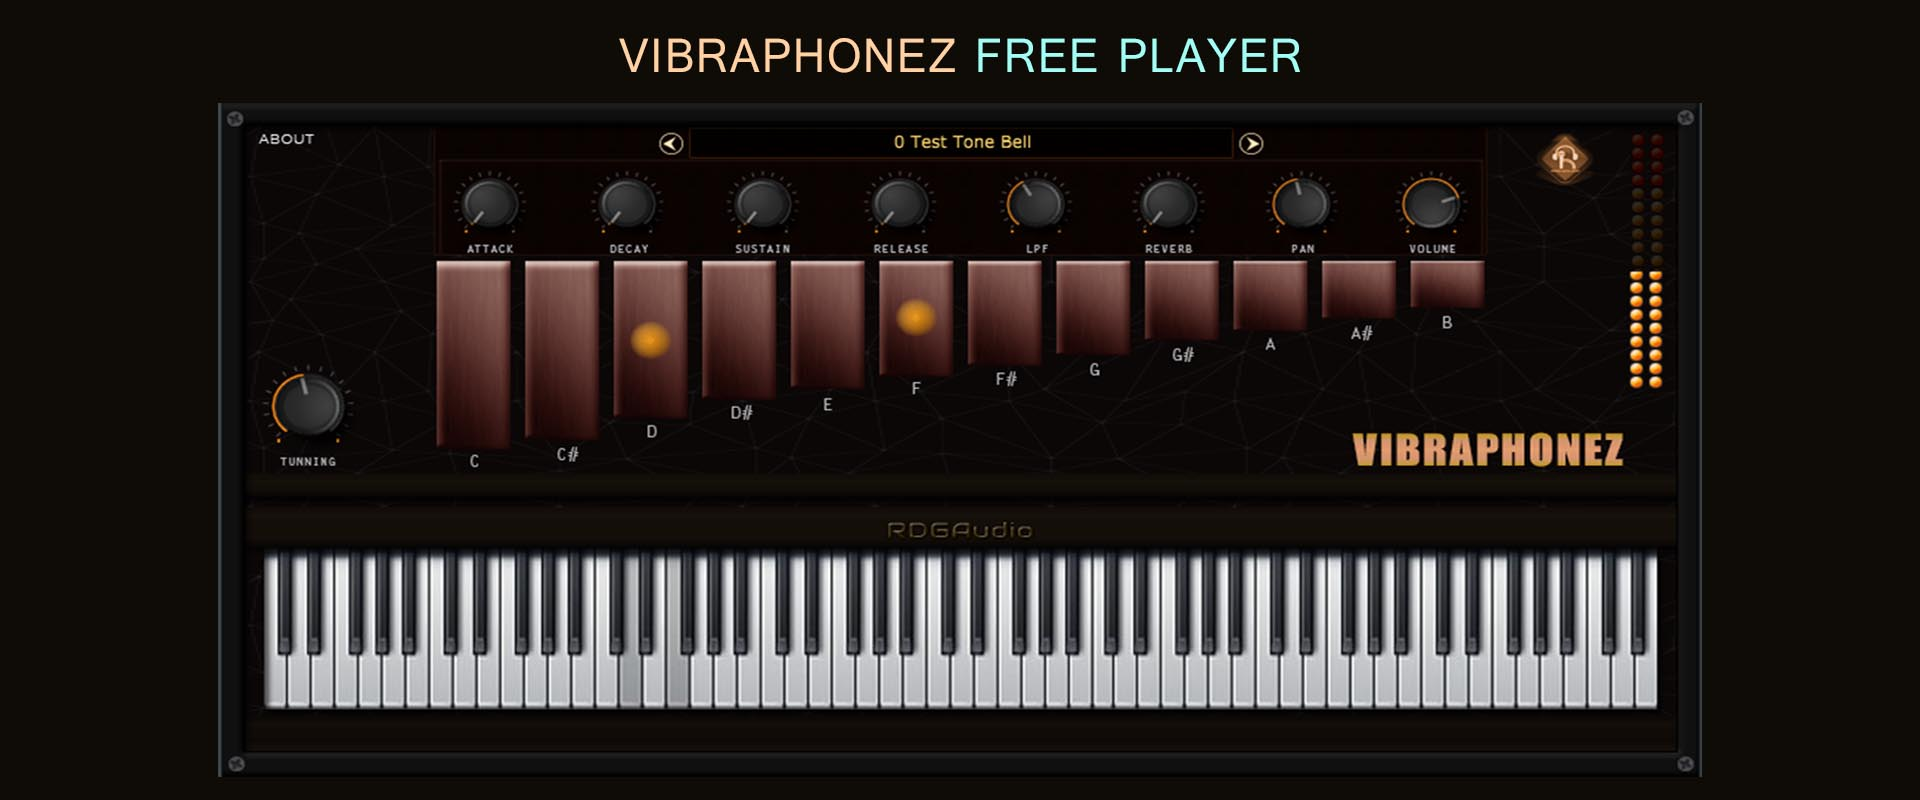 Vibraphonez Free Player for Slider